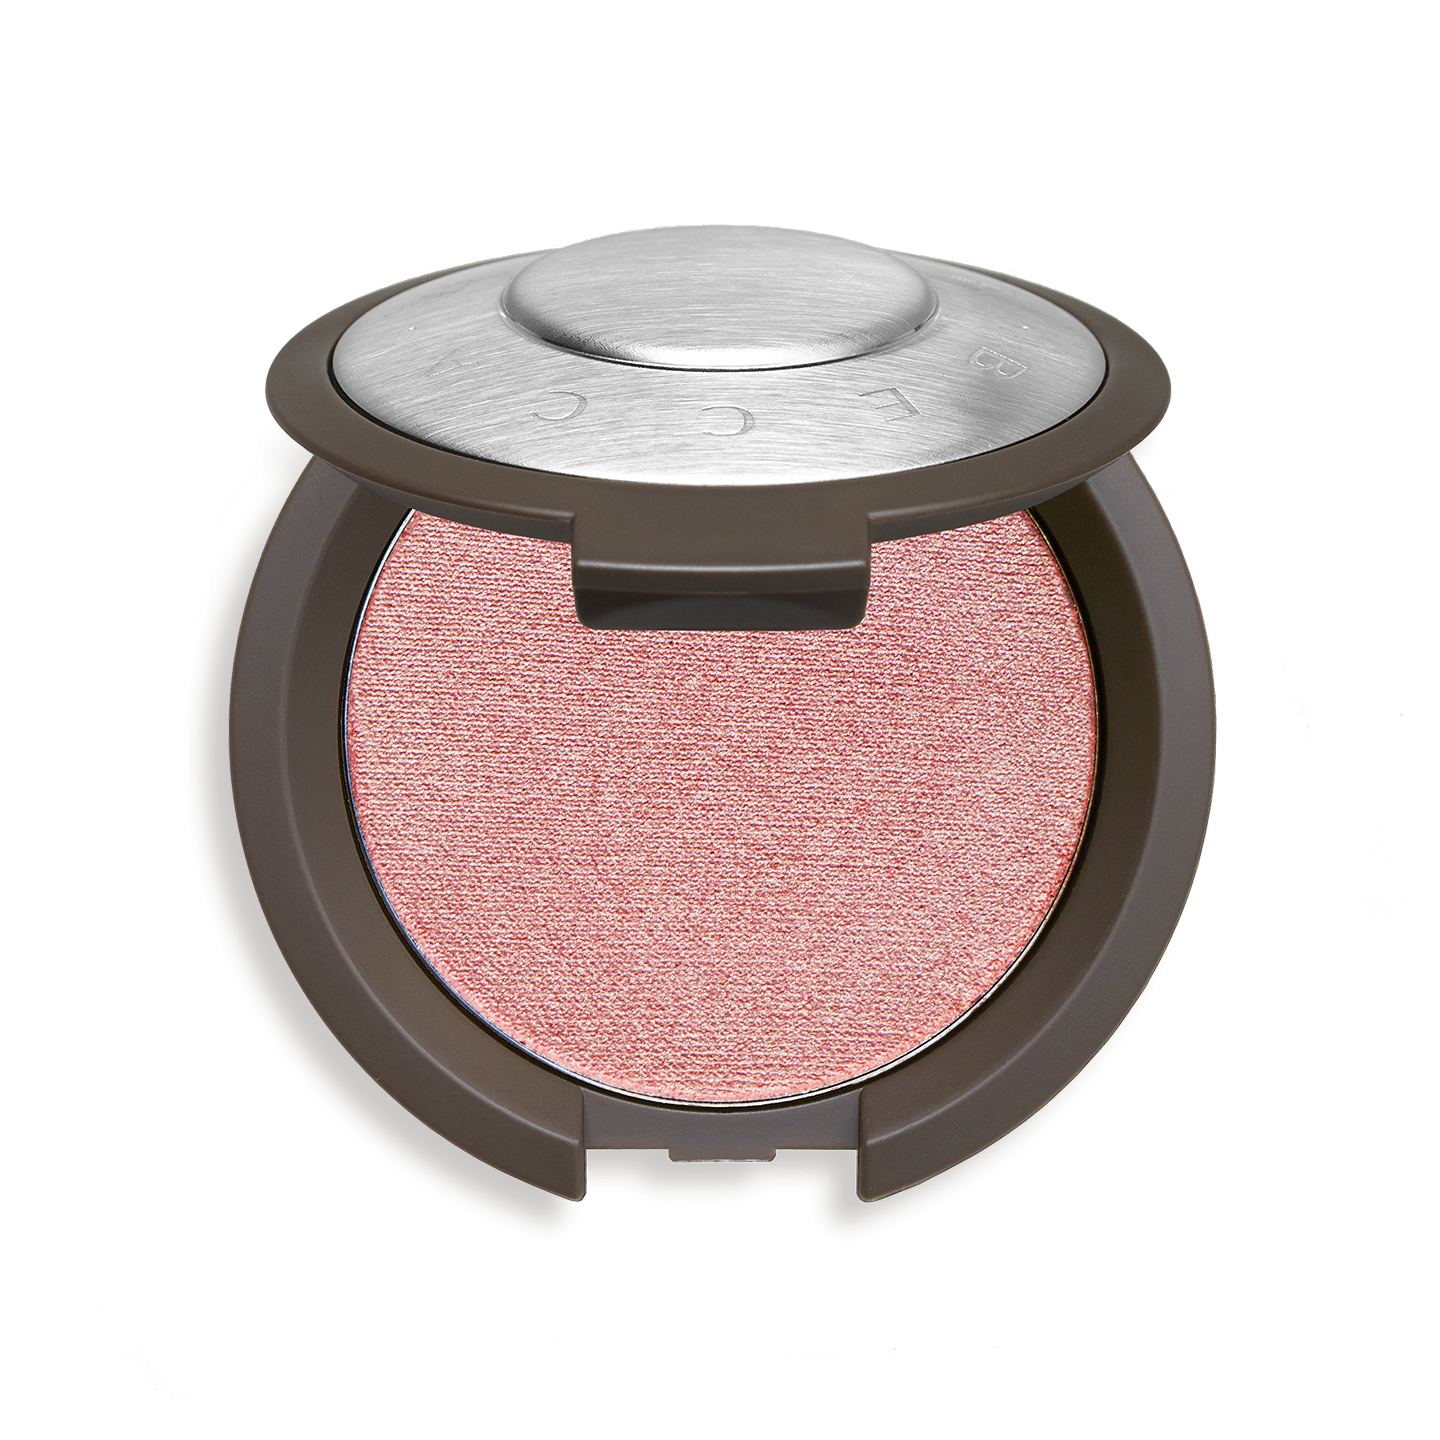 BECCA Luminous Blush